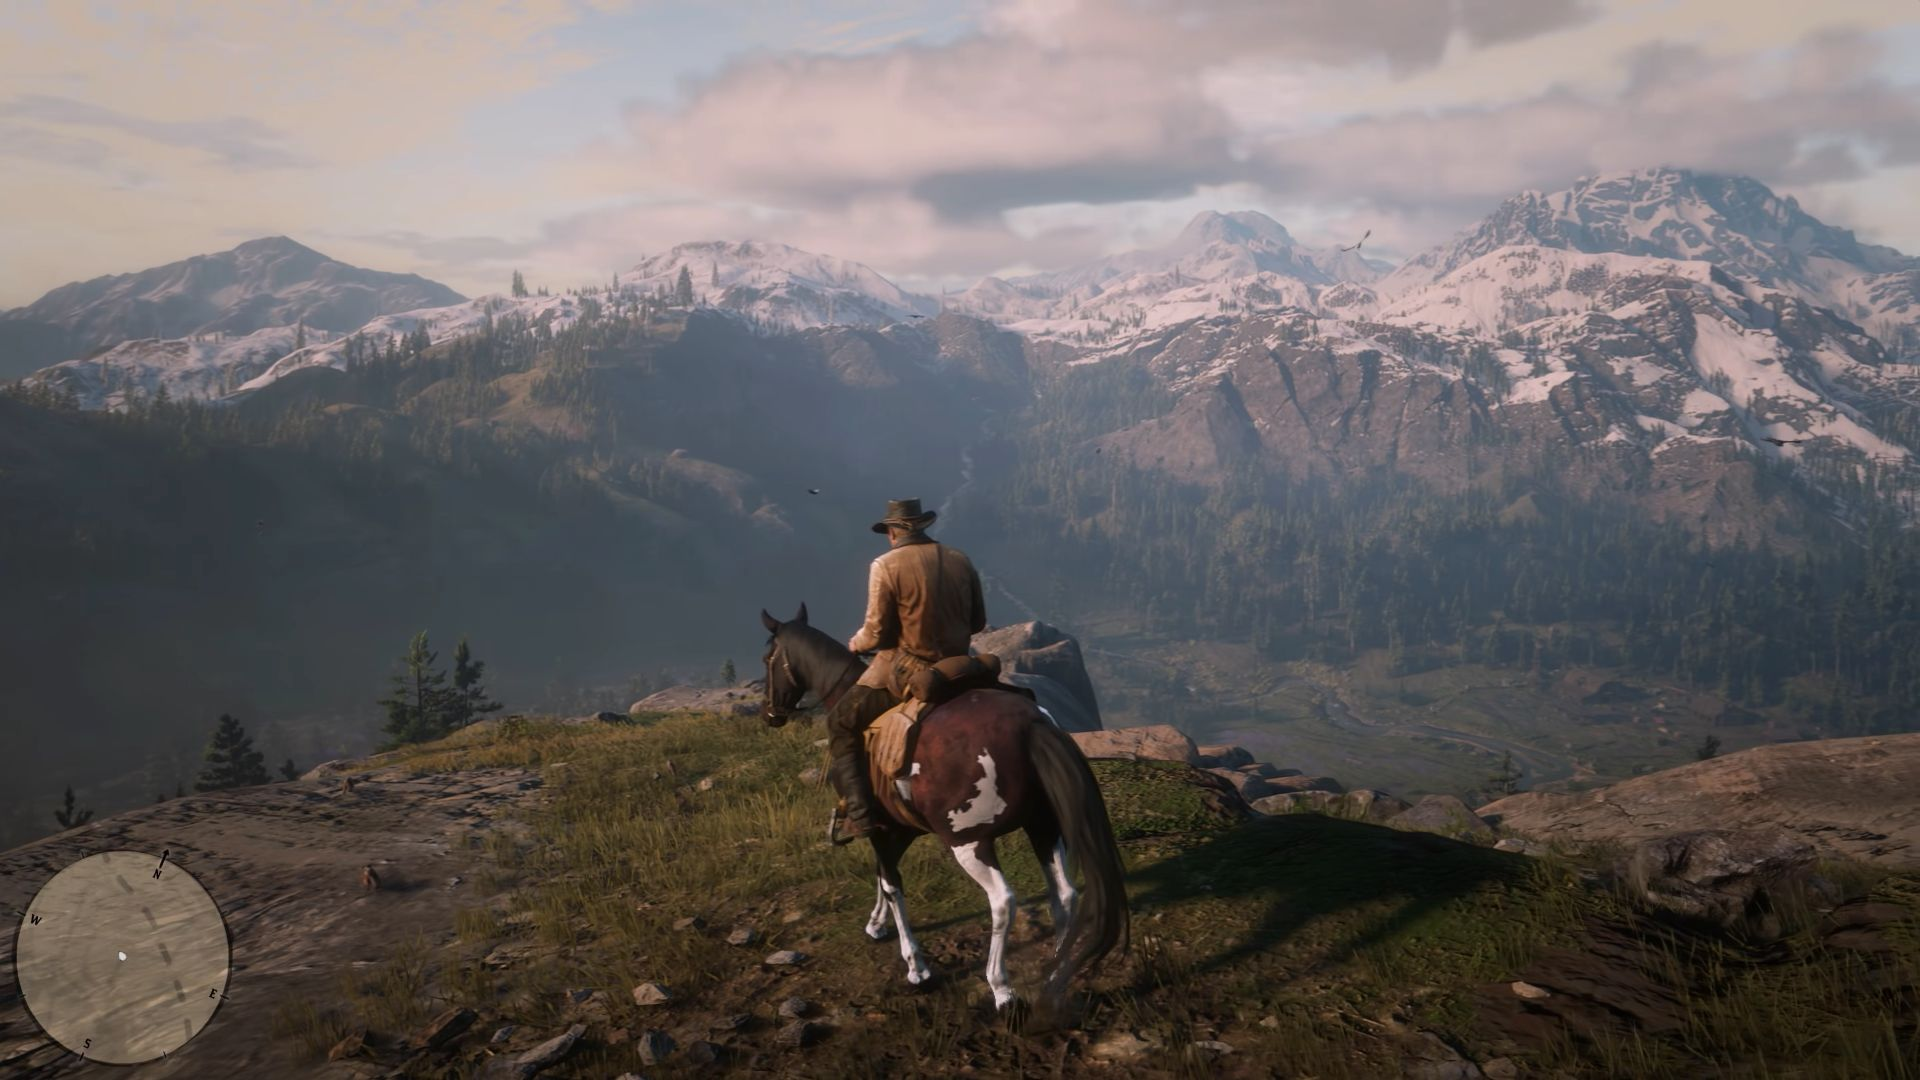 Red Dead Redemption 2, Call Of Duty, Black Ops 4 And More - Here Are The Video Games To Add To This Year's Christmas